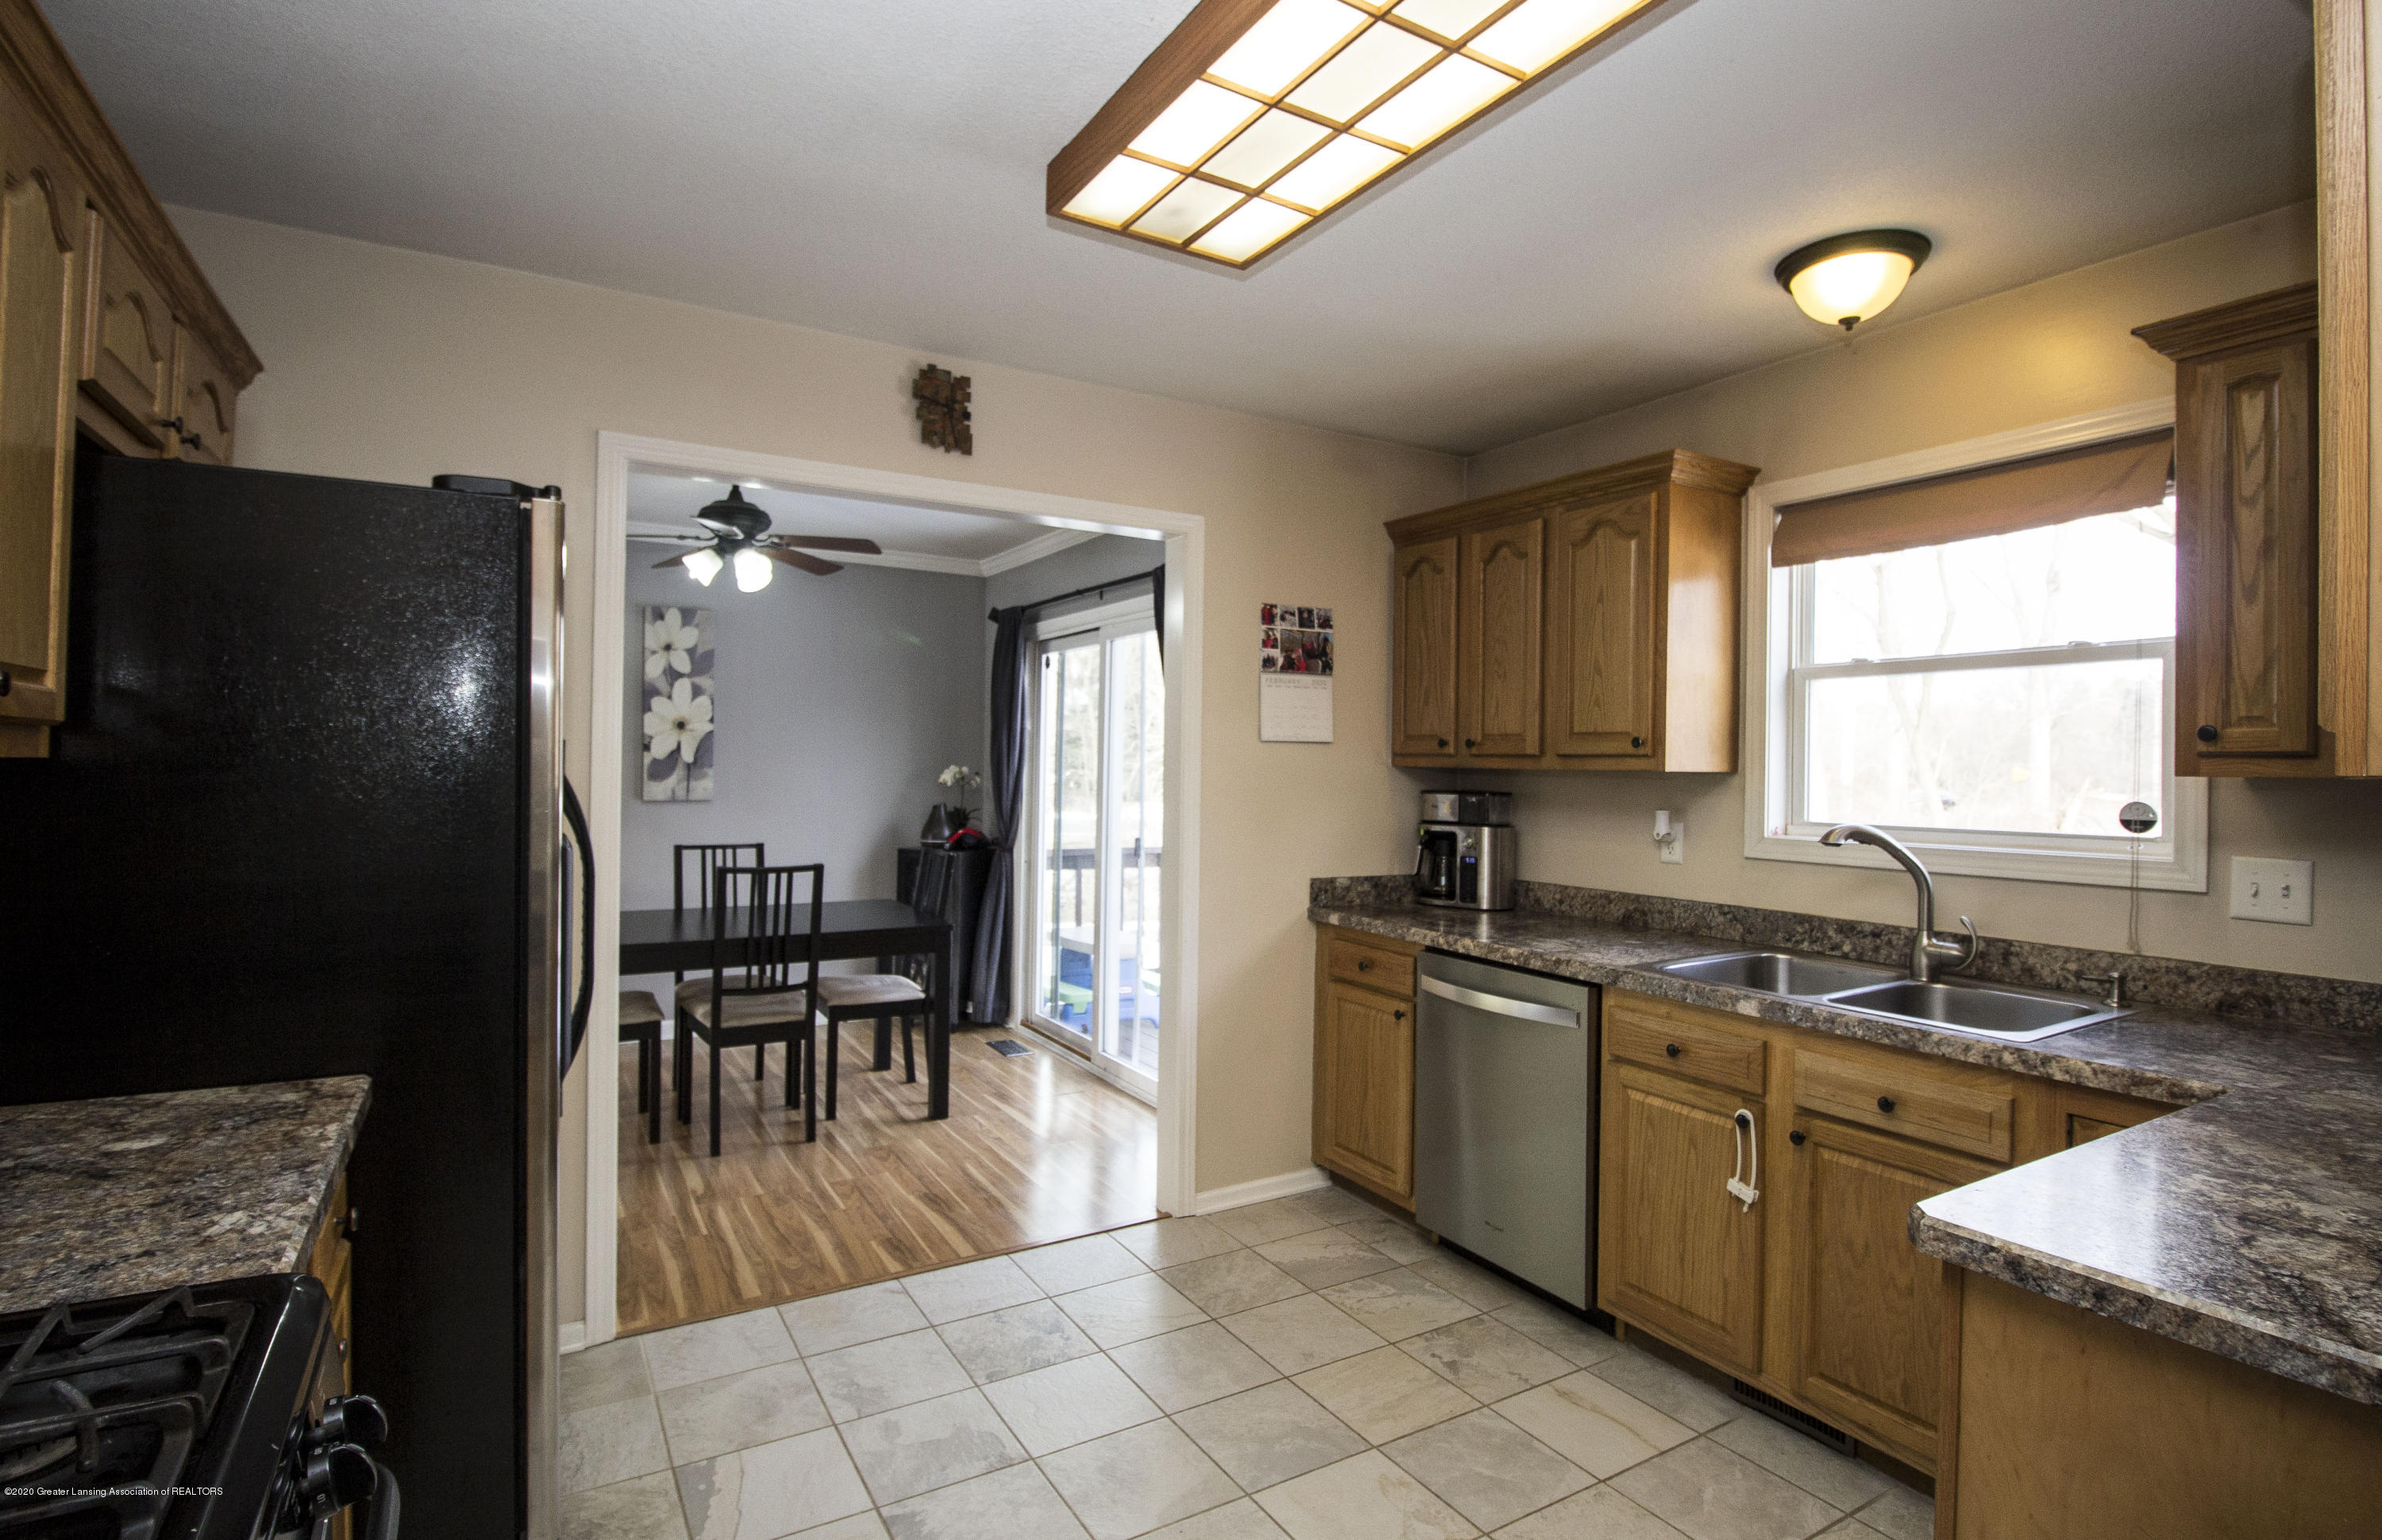 5498 Caplina Dr - Kitchen 2 - 11